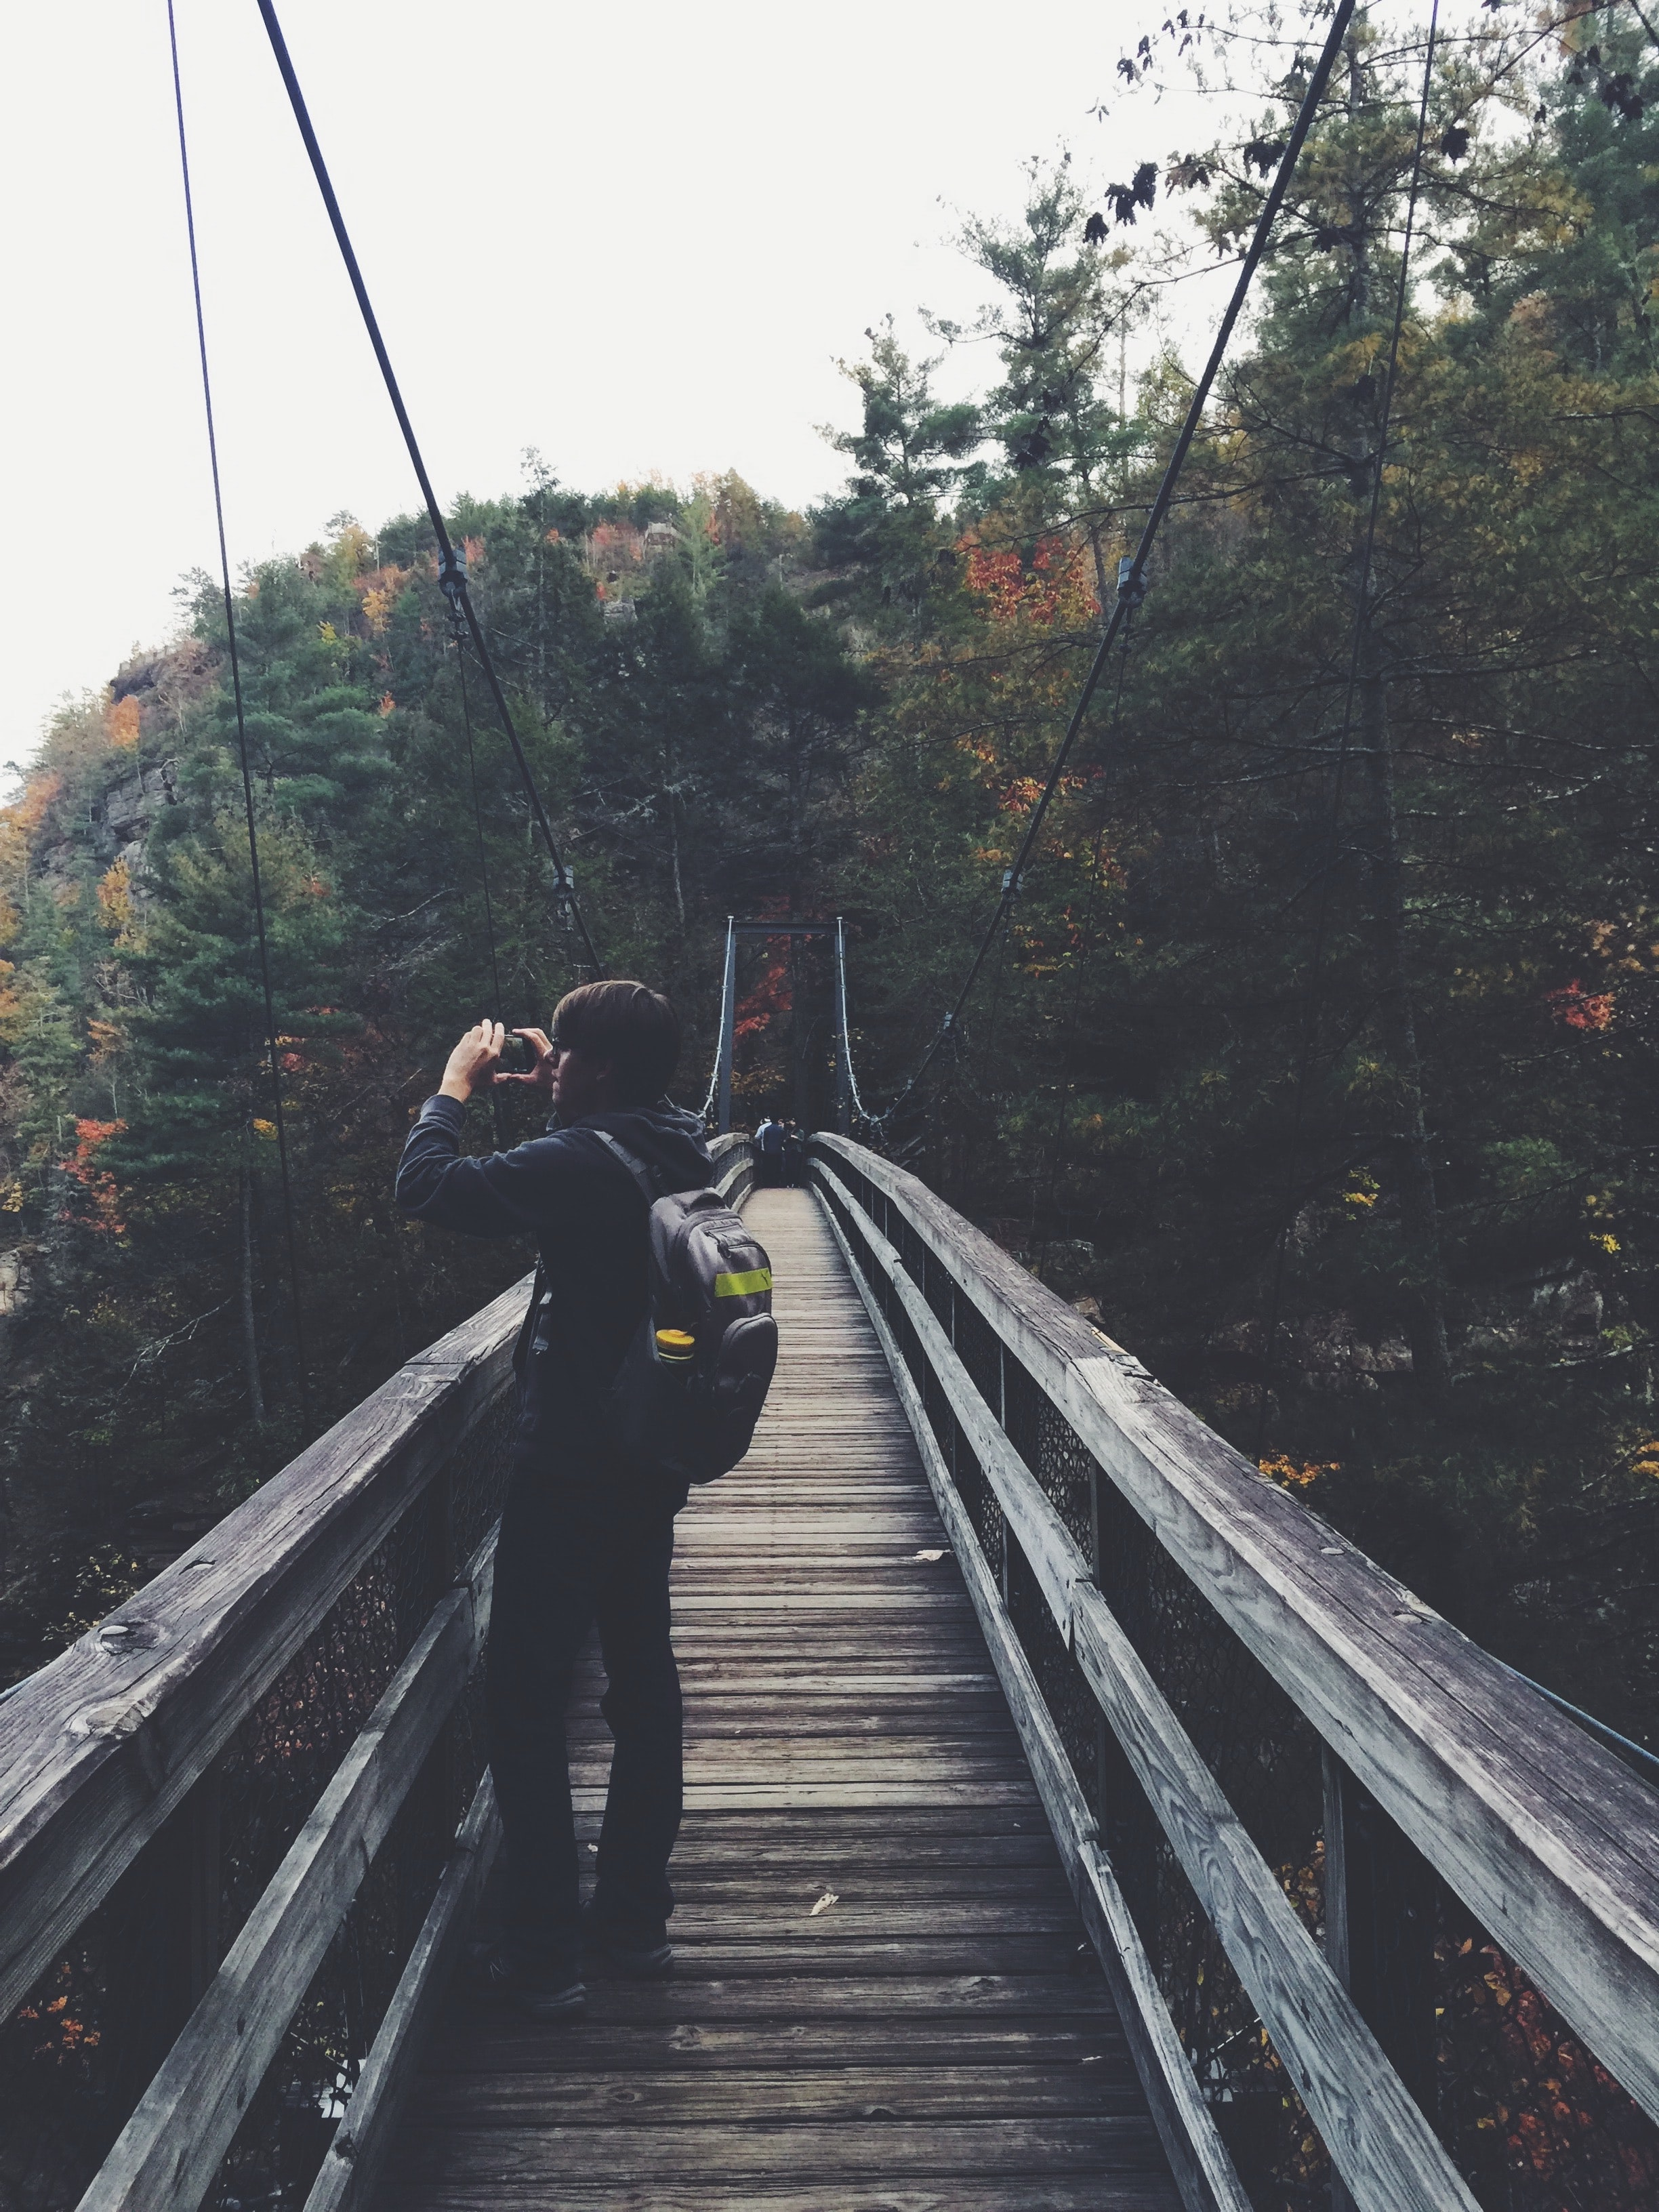 A man in dark casual clothing wearing a gray bag standing on a wooden suspension bridge in an early autumn forest taking a picture of the scenery